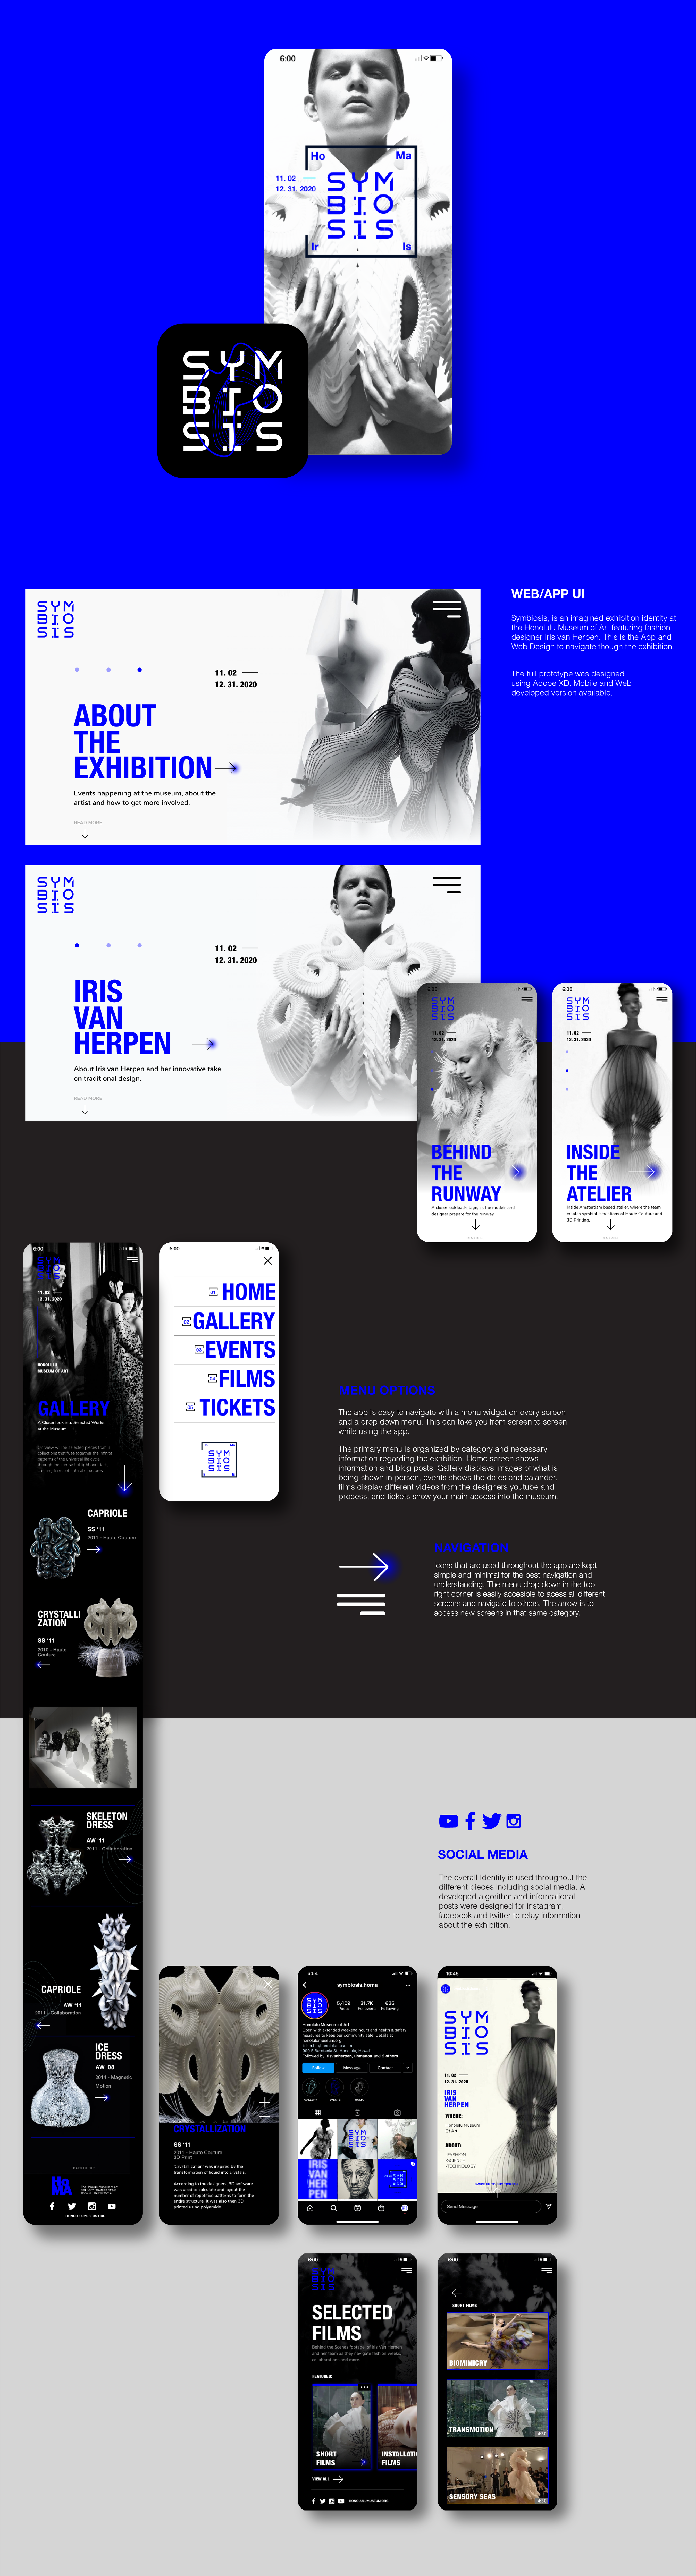 IVH_appLayout-01